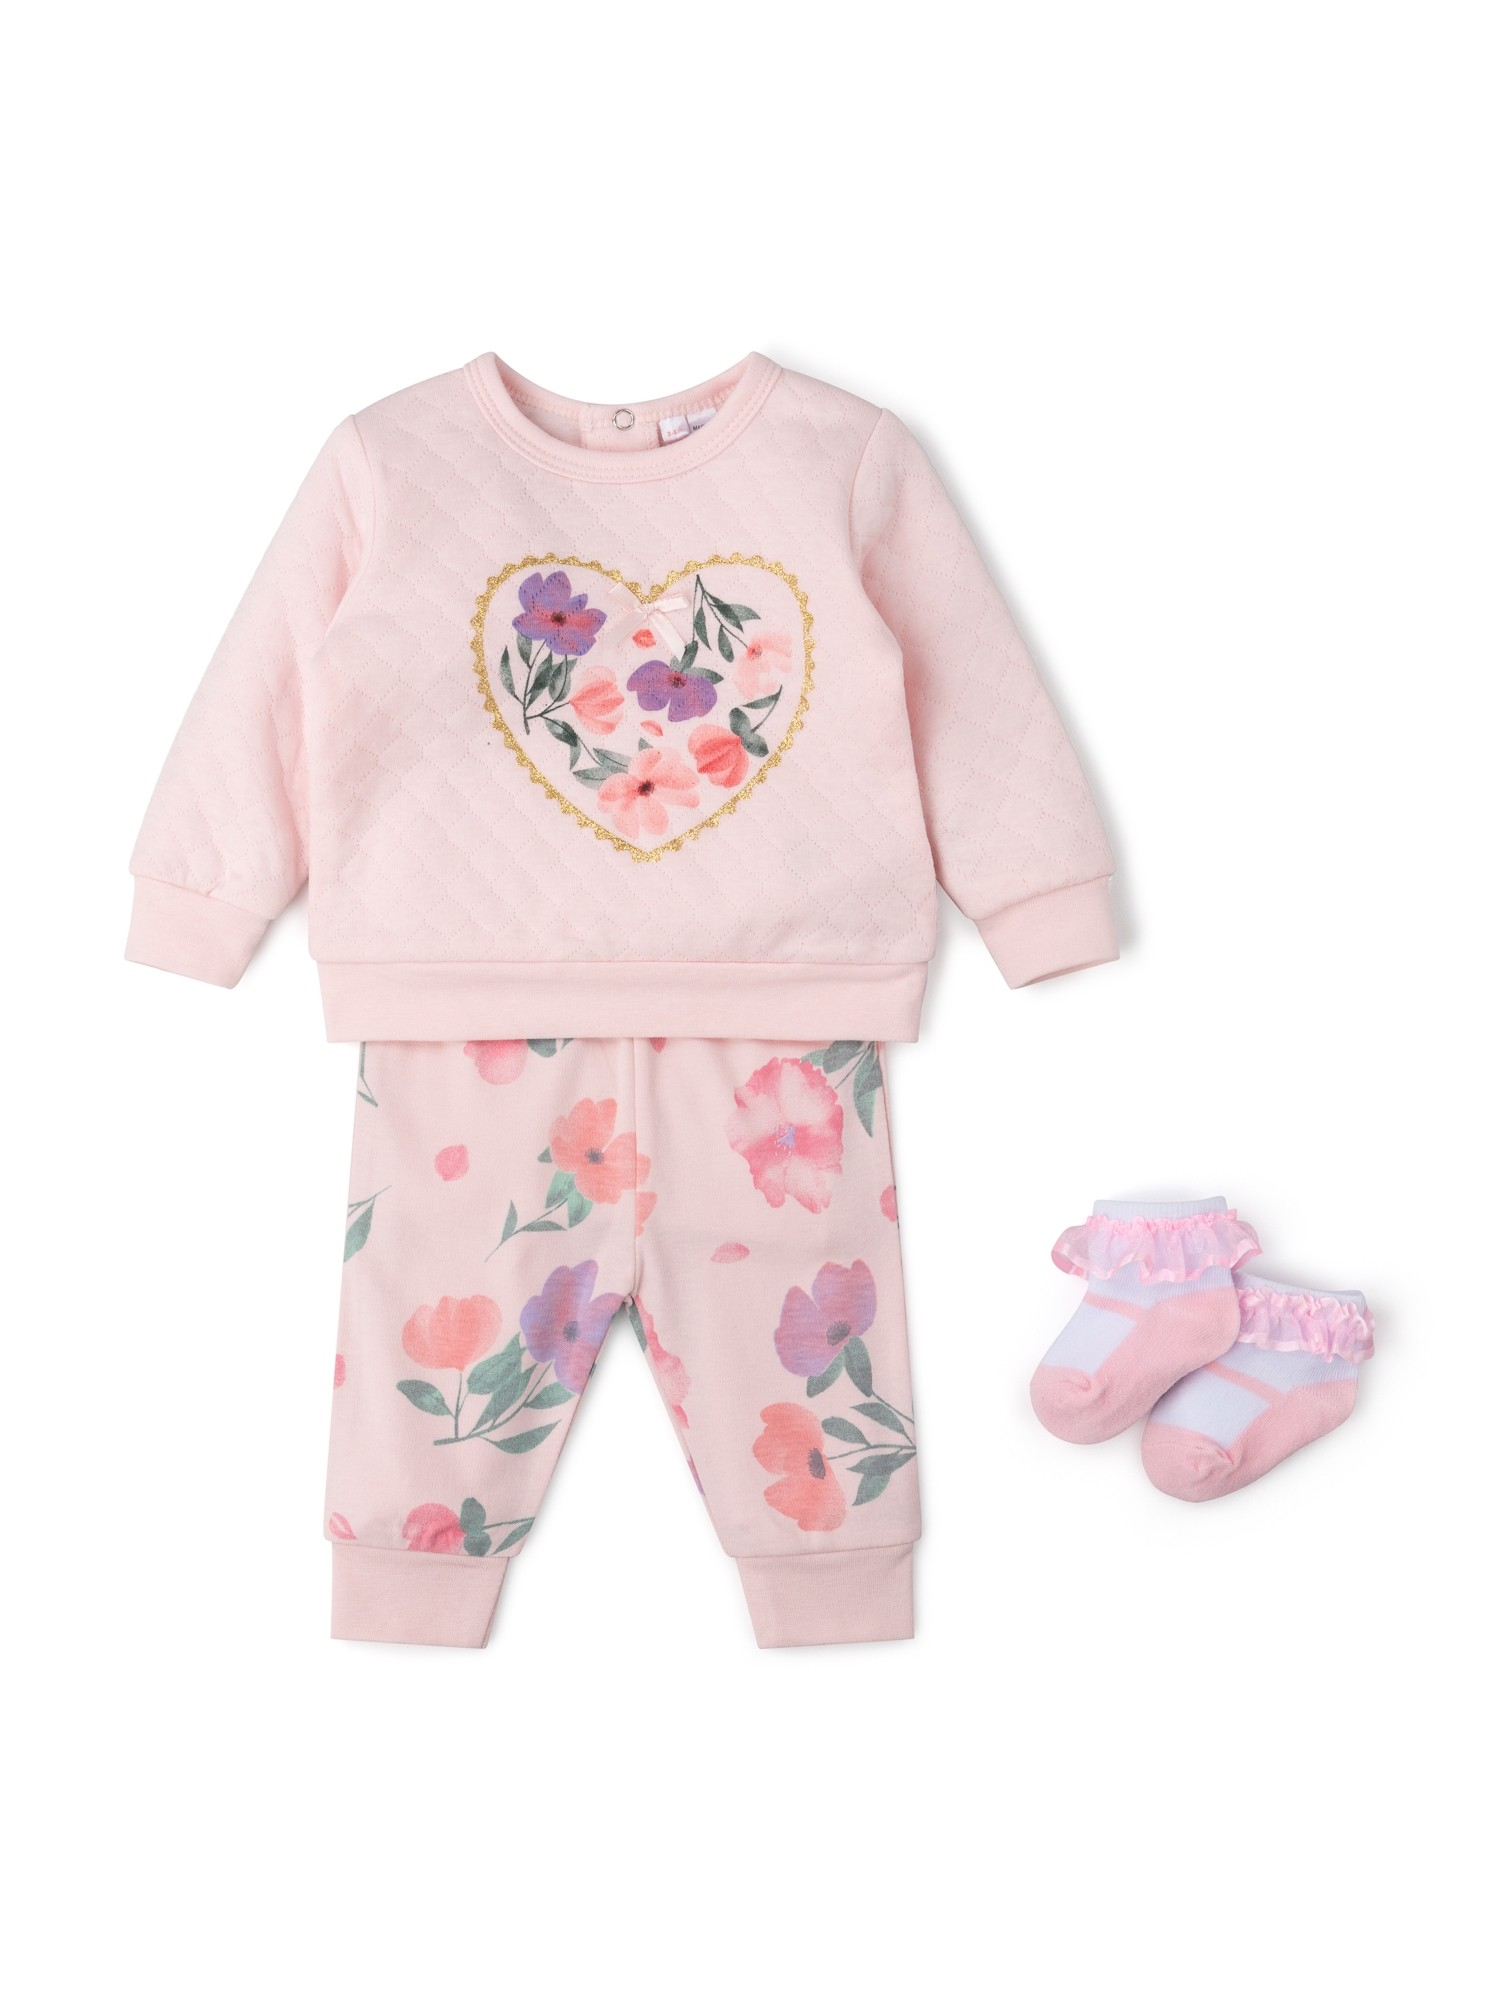 Rock a Bye Baby Baby Girls Quilted Top, Pants and Socks Set  PACK OF 6